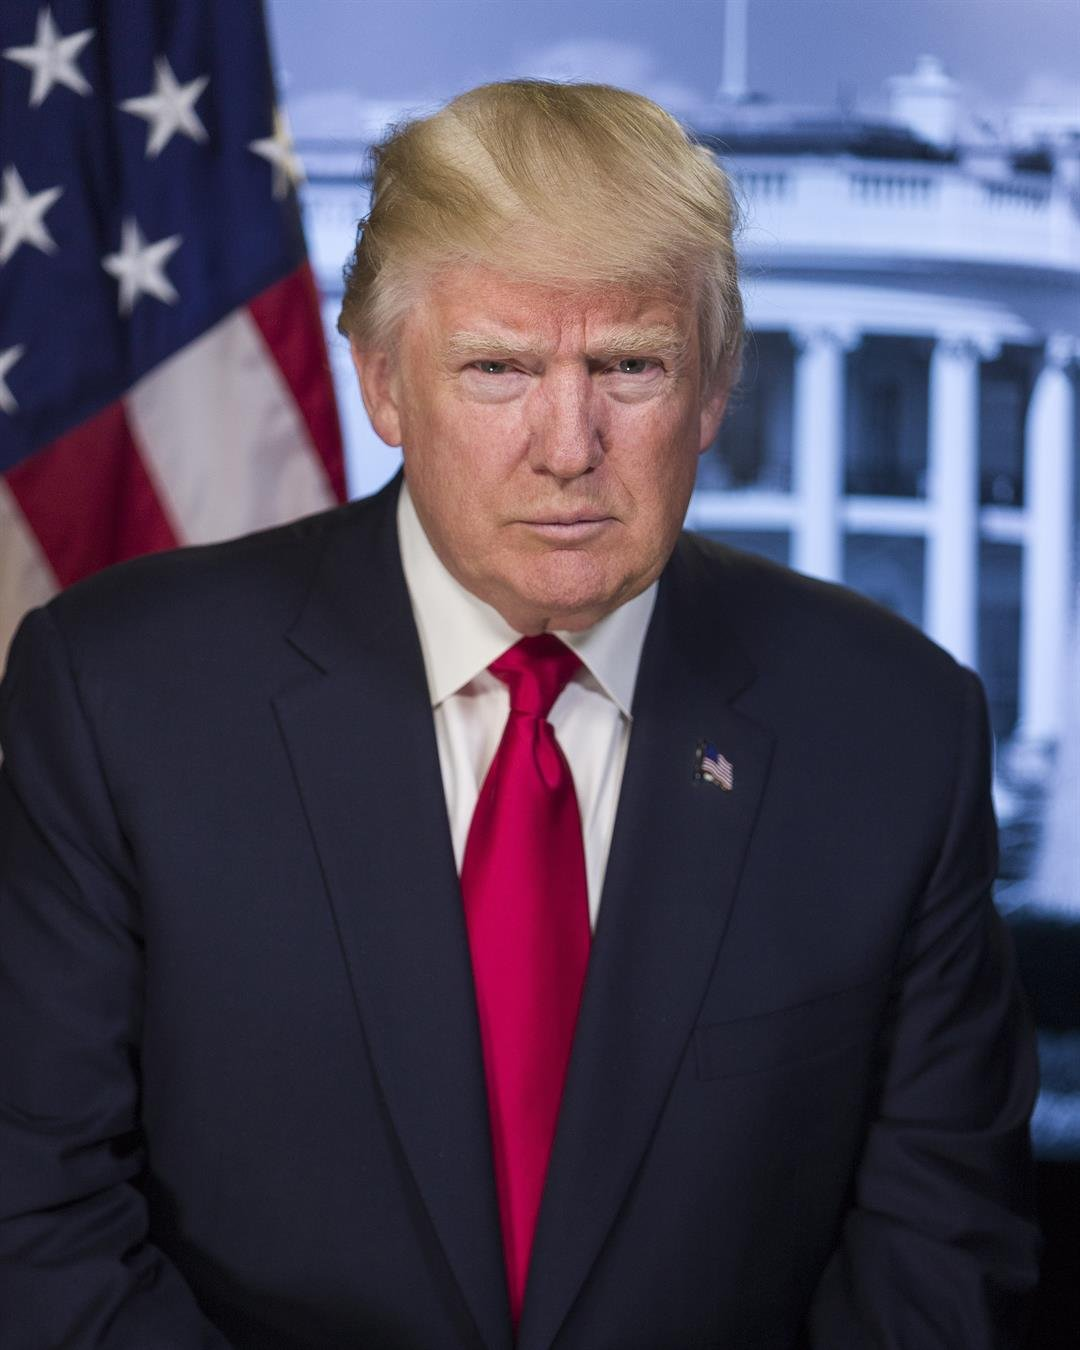 President Donald J. Trump is the 45th President of the United States